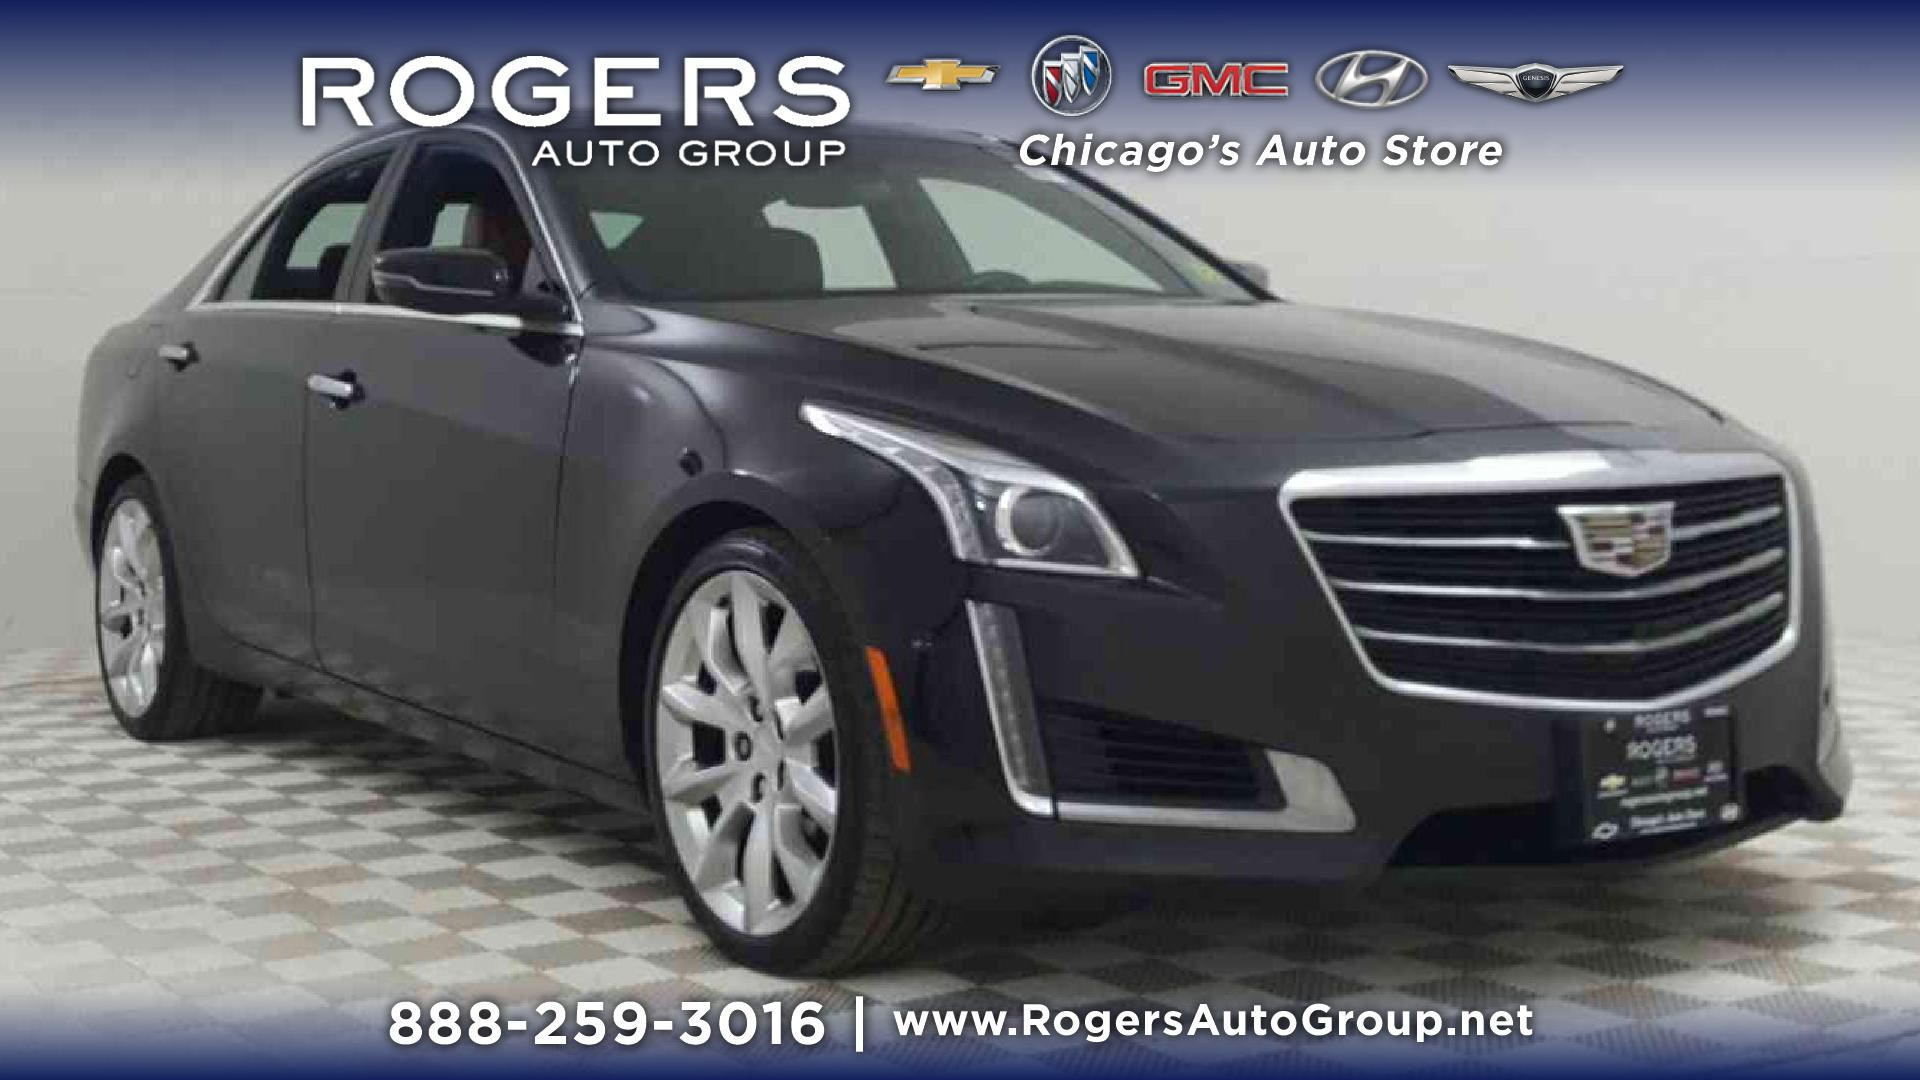 york ny new for cts img in sale auto used com cadillac cars and